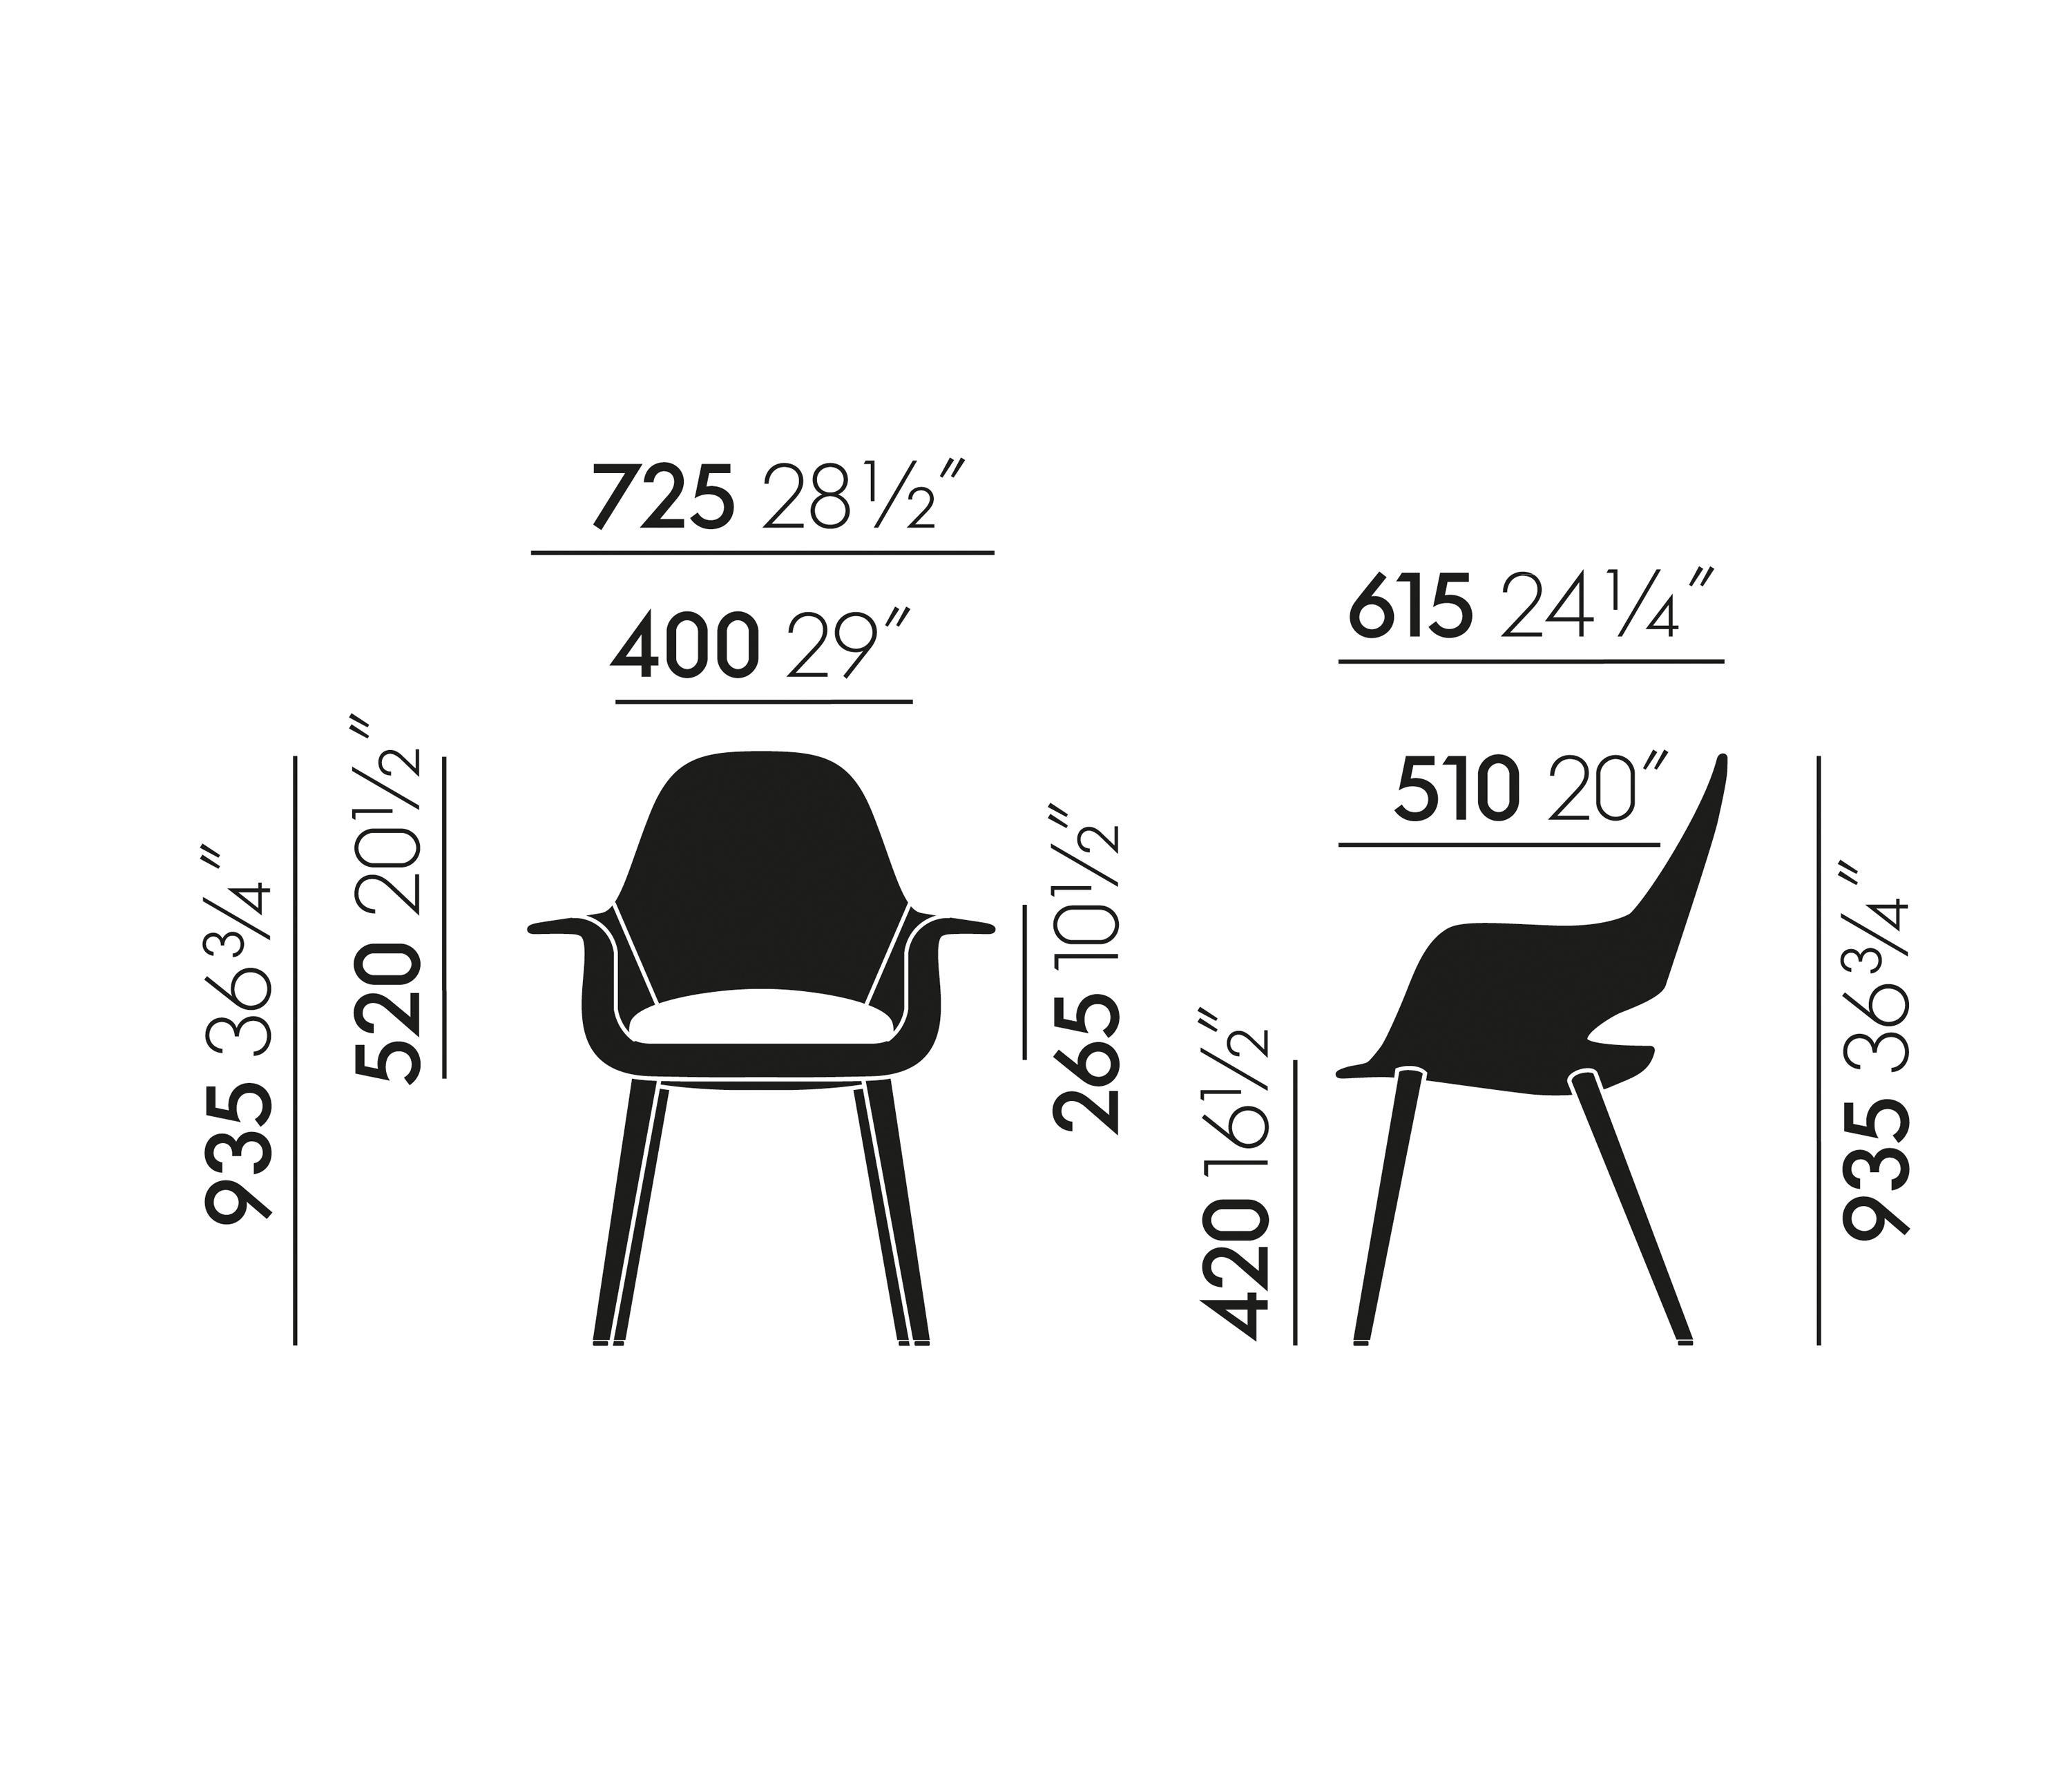 Organic Conference Chairs From Vitra Architonic - Vitra Organic Chair Price